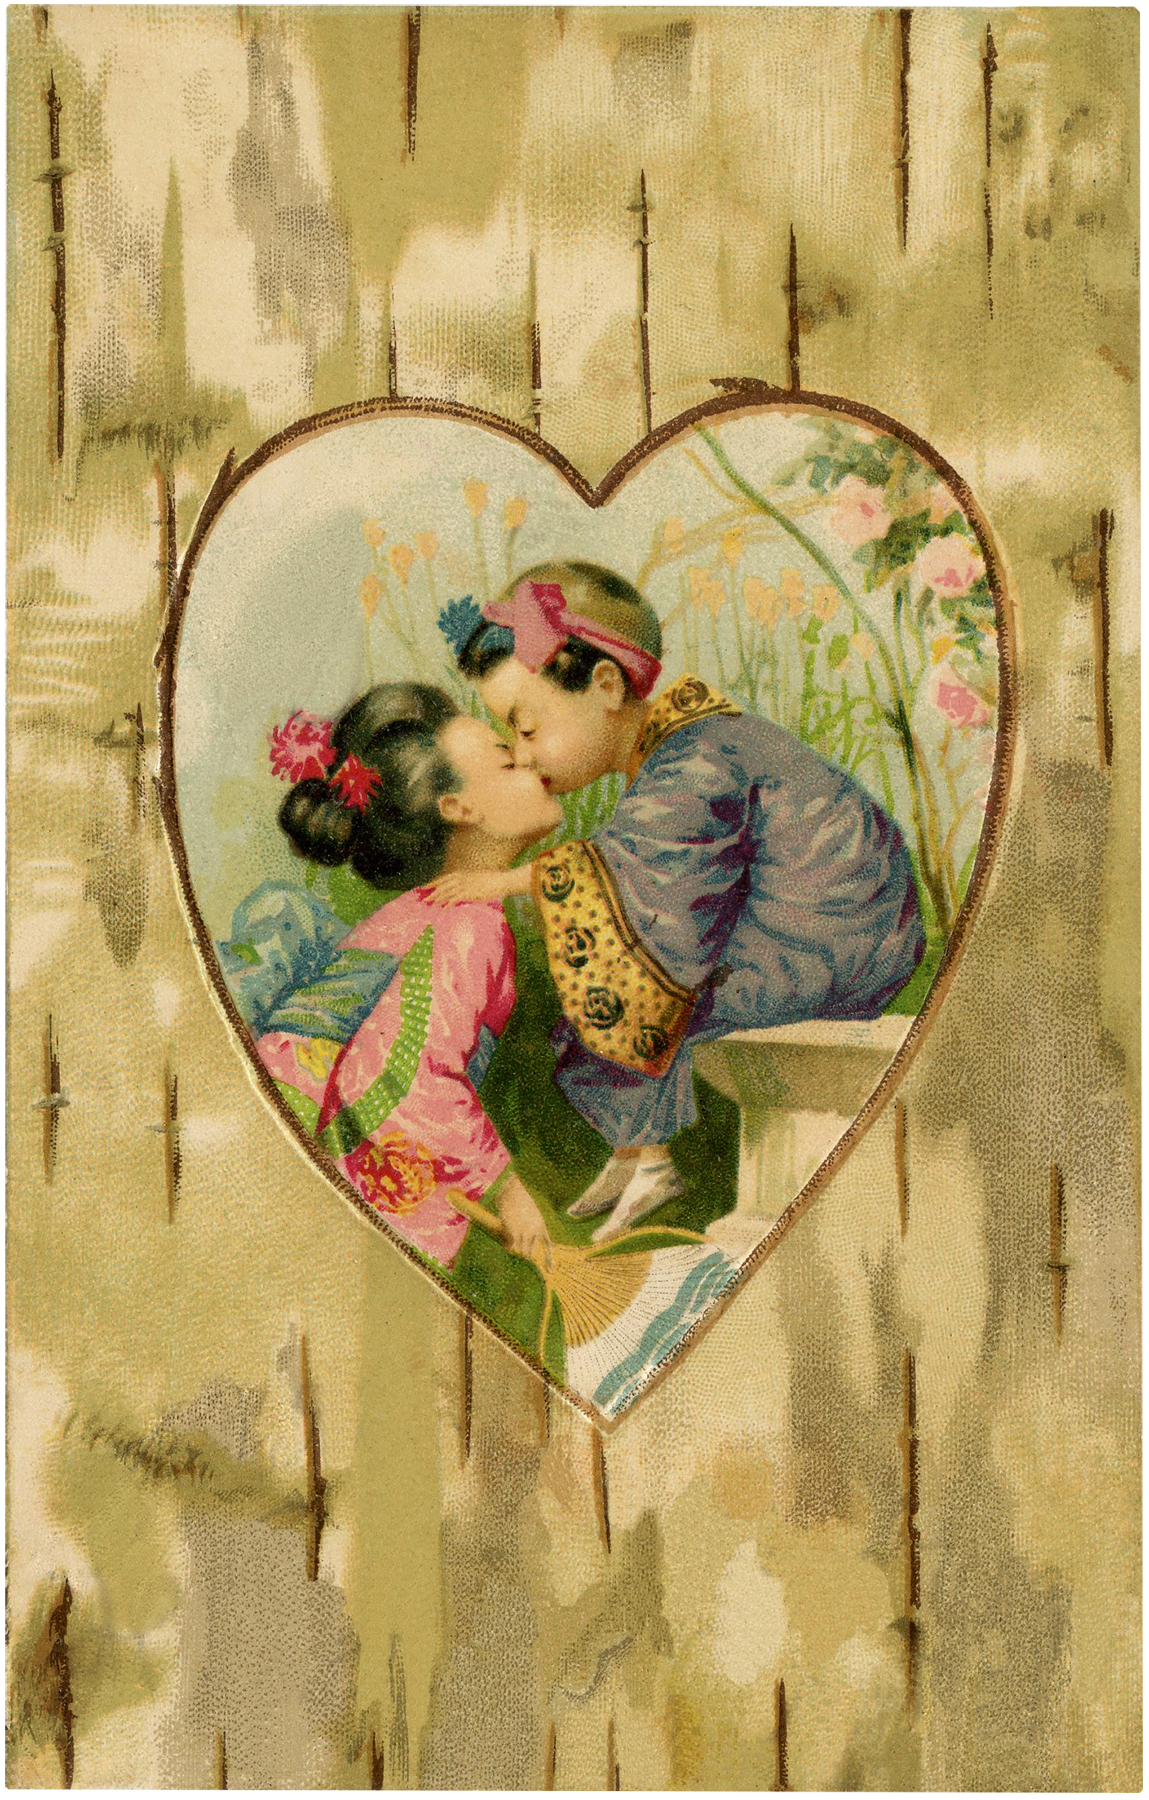 Vintage Children Kissing Image Asian Themed Art The